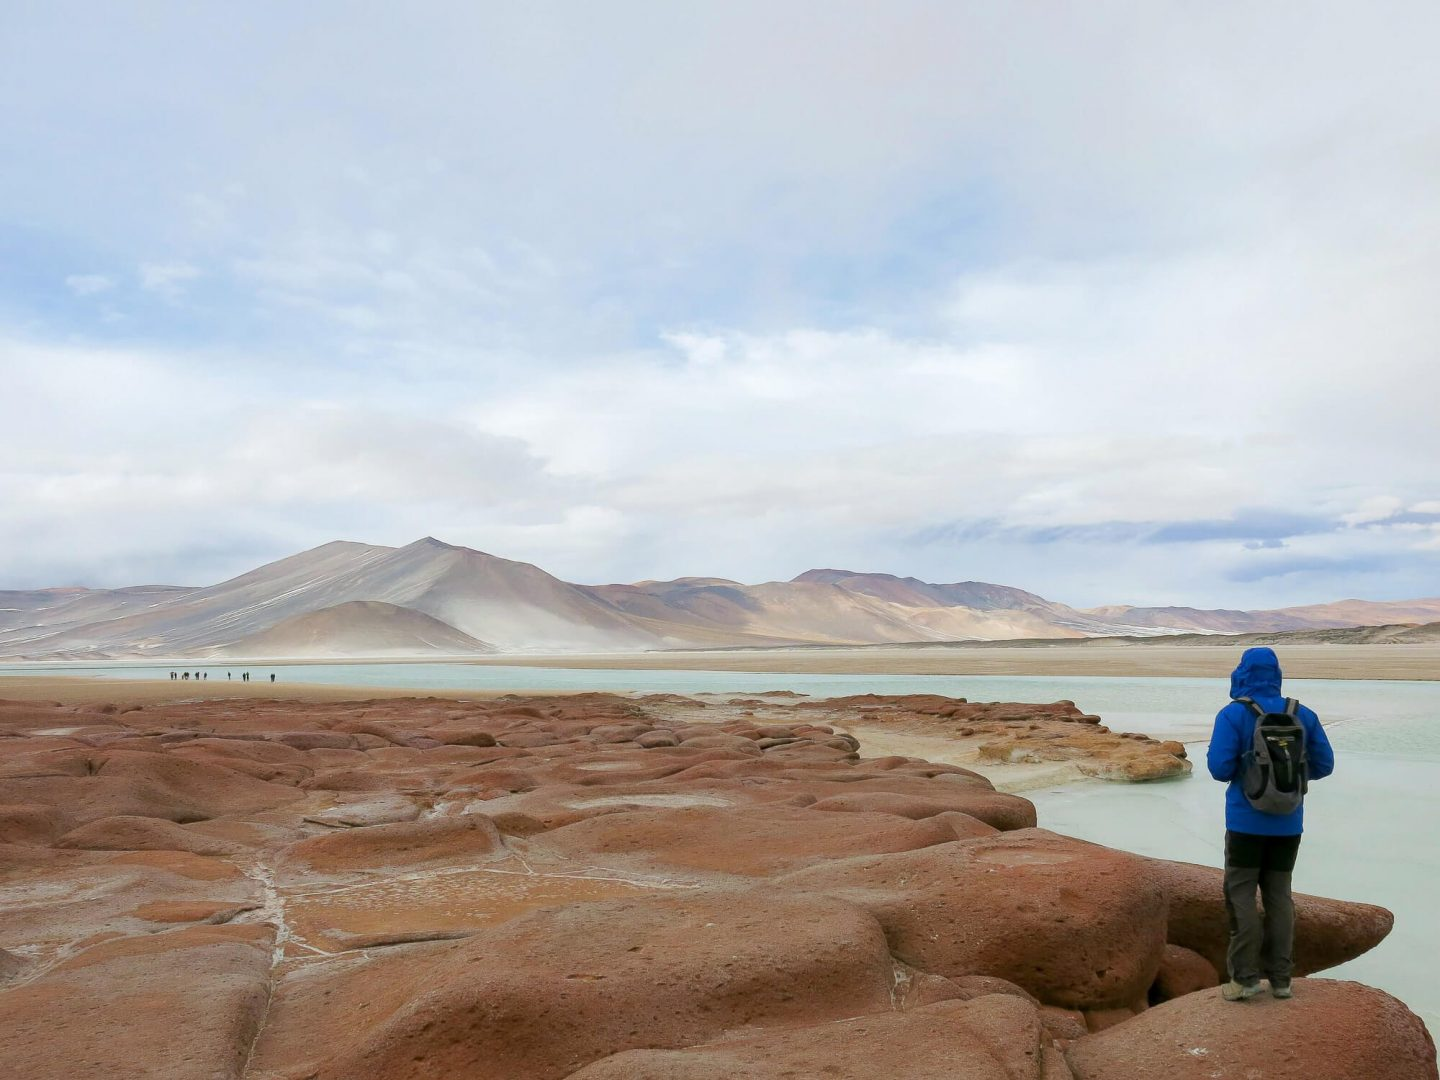 Stunning landscapes at Laguna Piedras Rojas or the red rocks. We stopped here on our way to the Atacama Salt Flats.